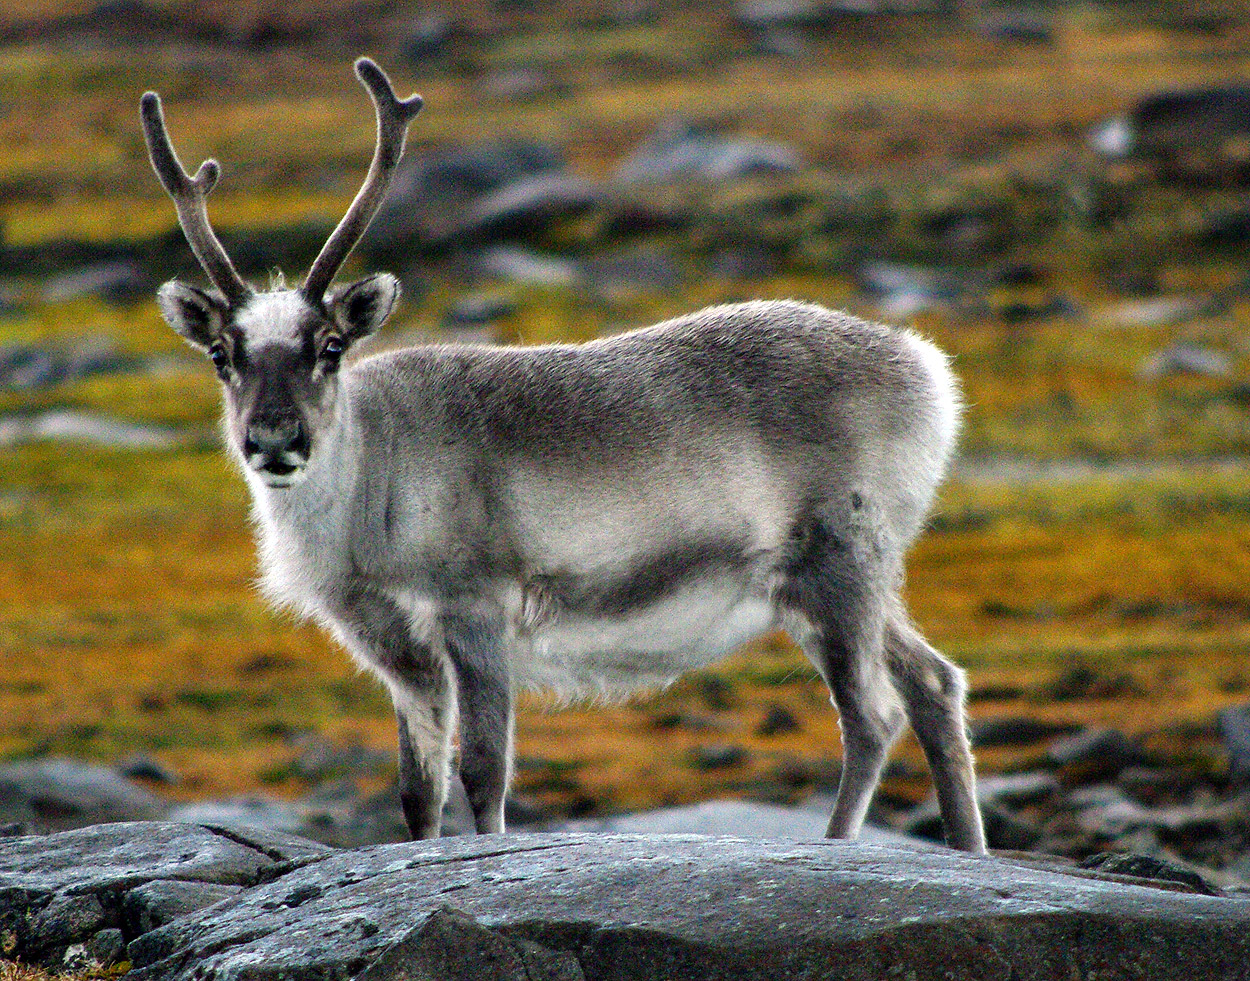 Reindeer Of The Arctic, Facts And Adaptations